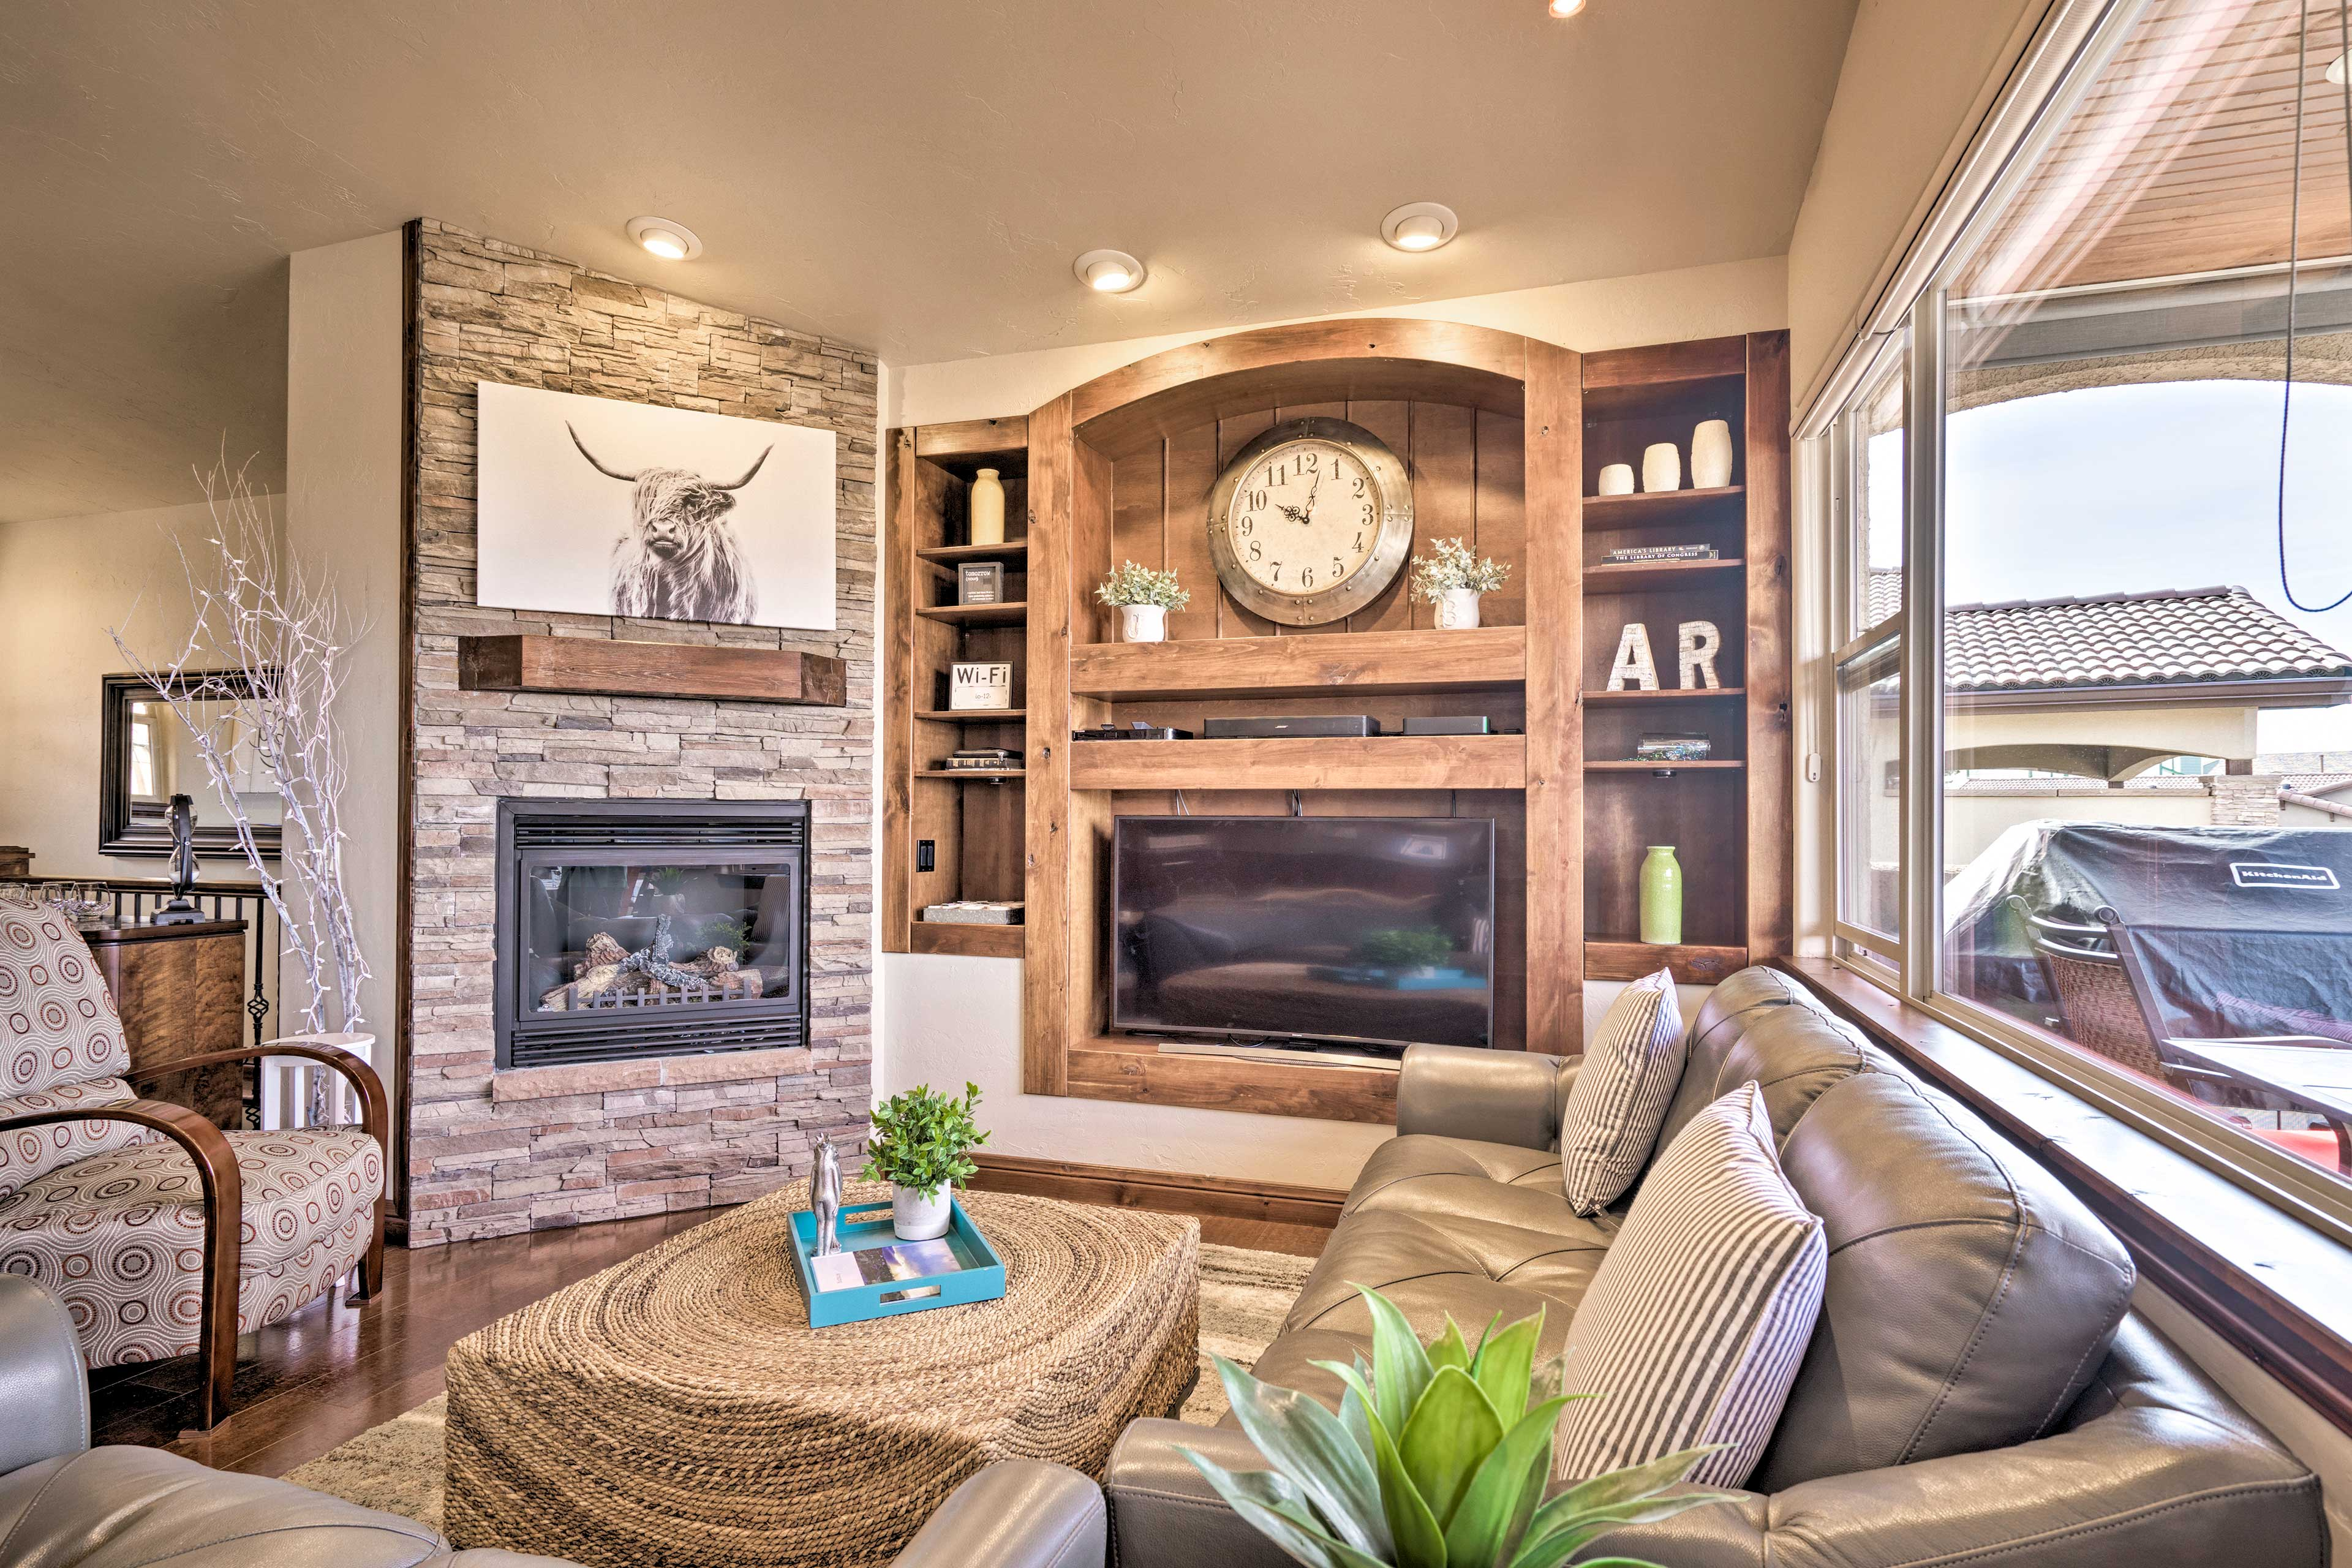 The upstairs living room includes a flat-screen TV and gas fireplace.